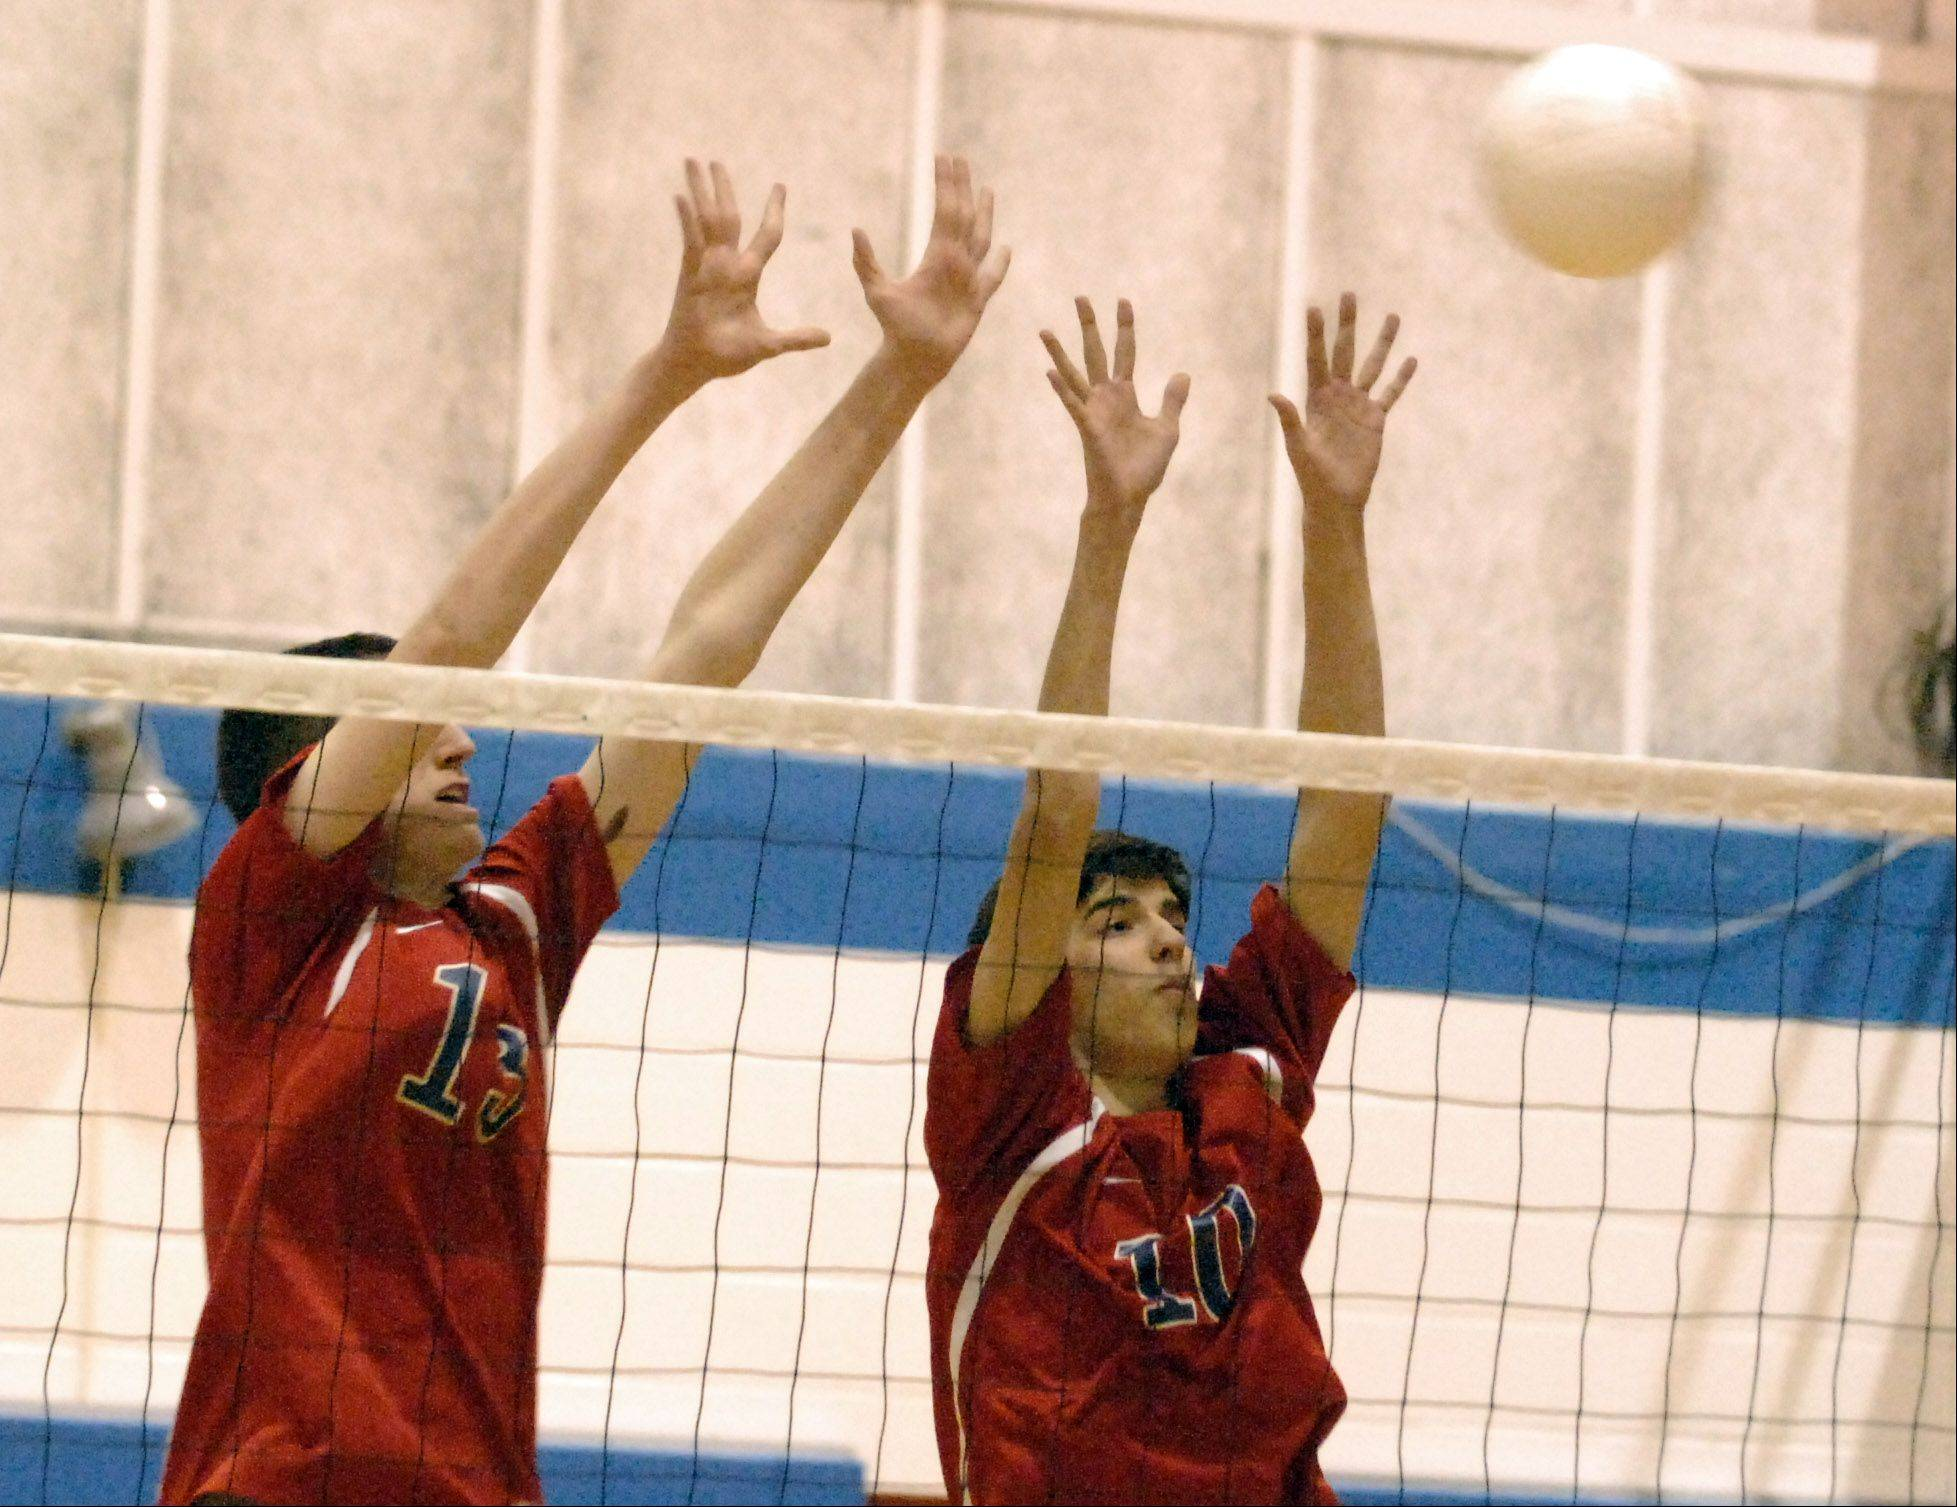 South Elgin's Ian Saxton, left, and Chris Gibadlo go up for a block against Larkin during Thursday's game at Larkin in Elgin.